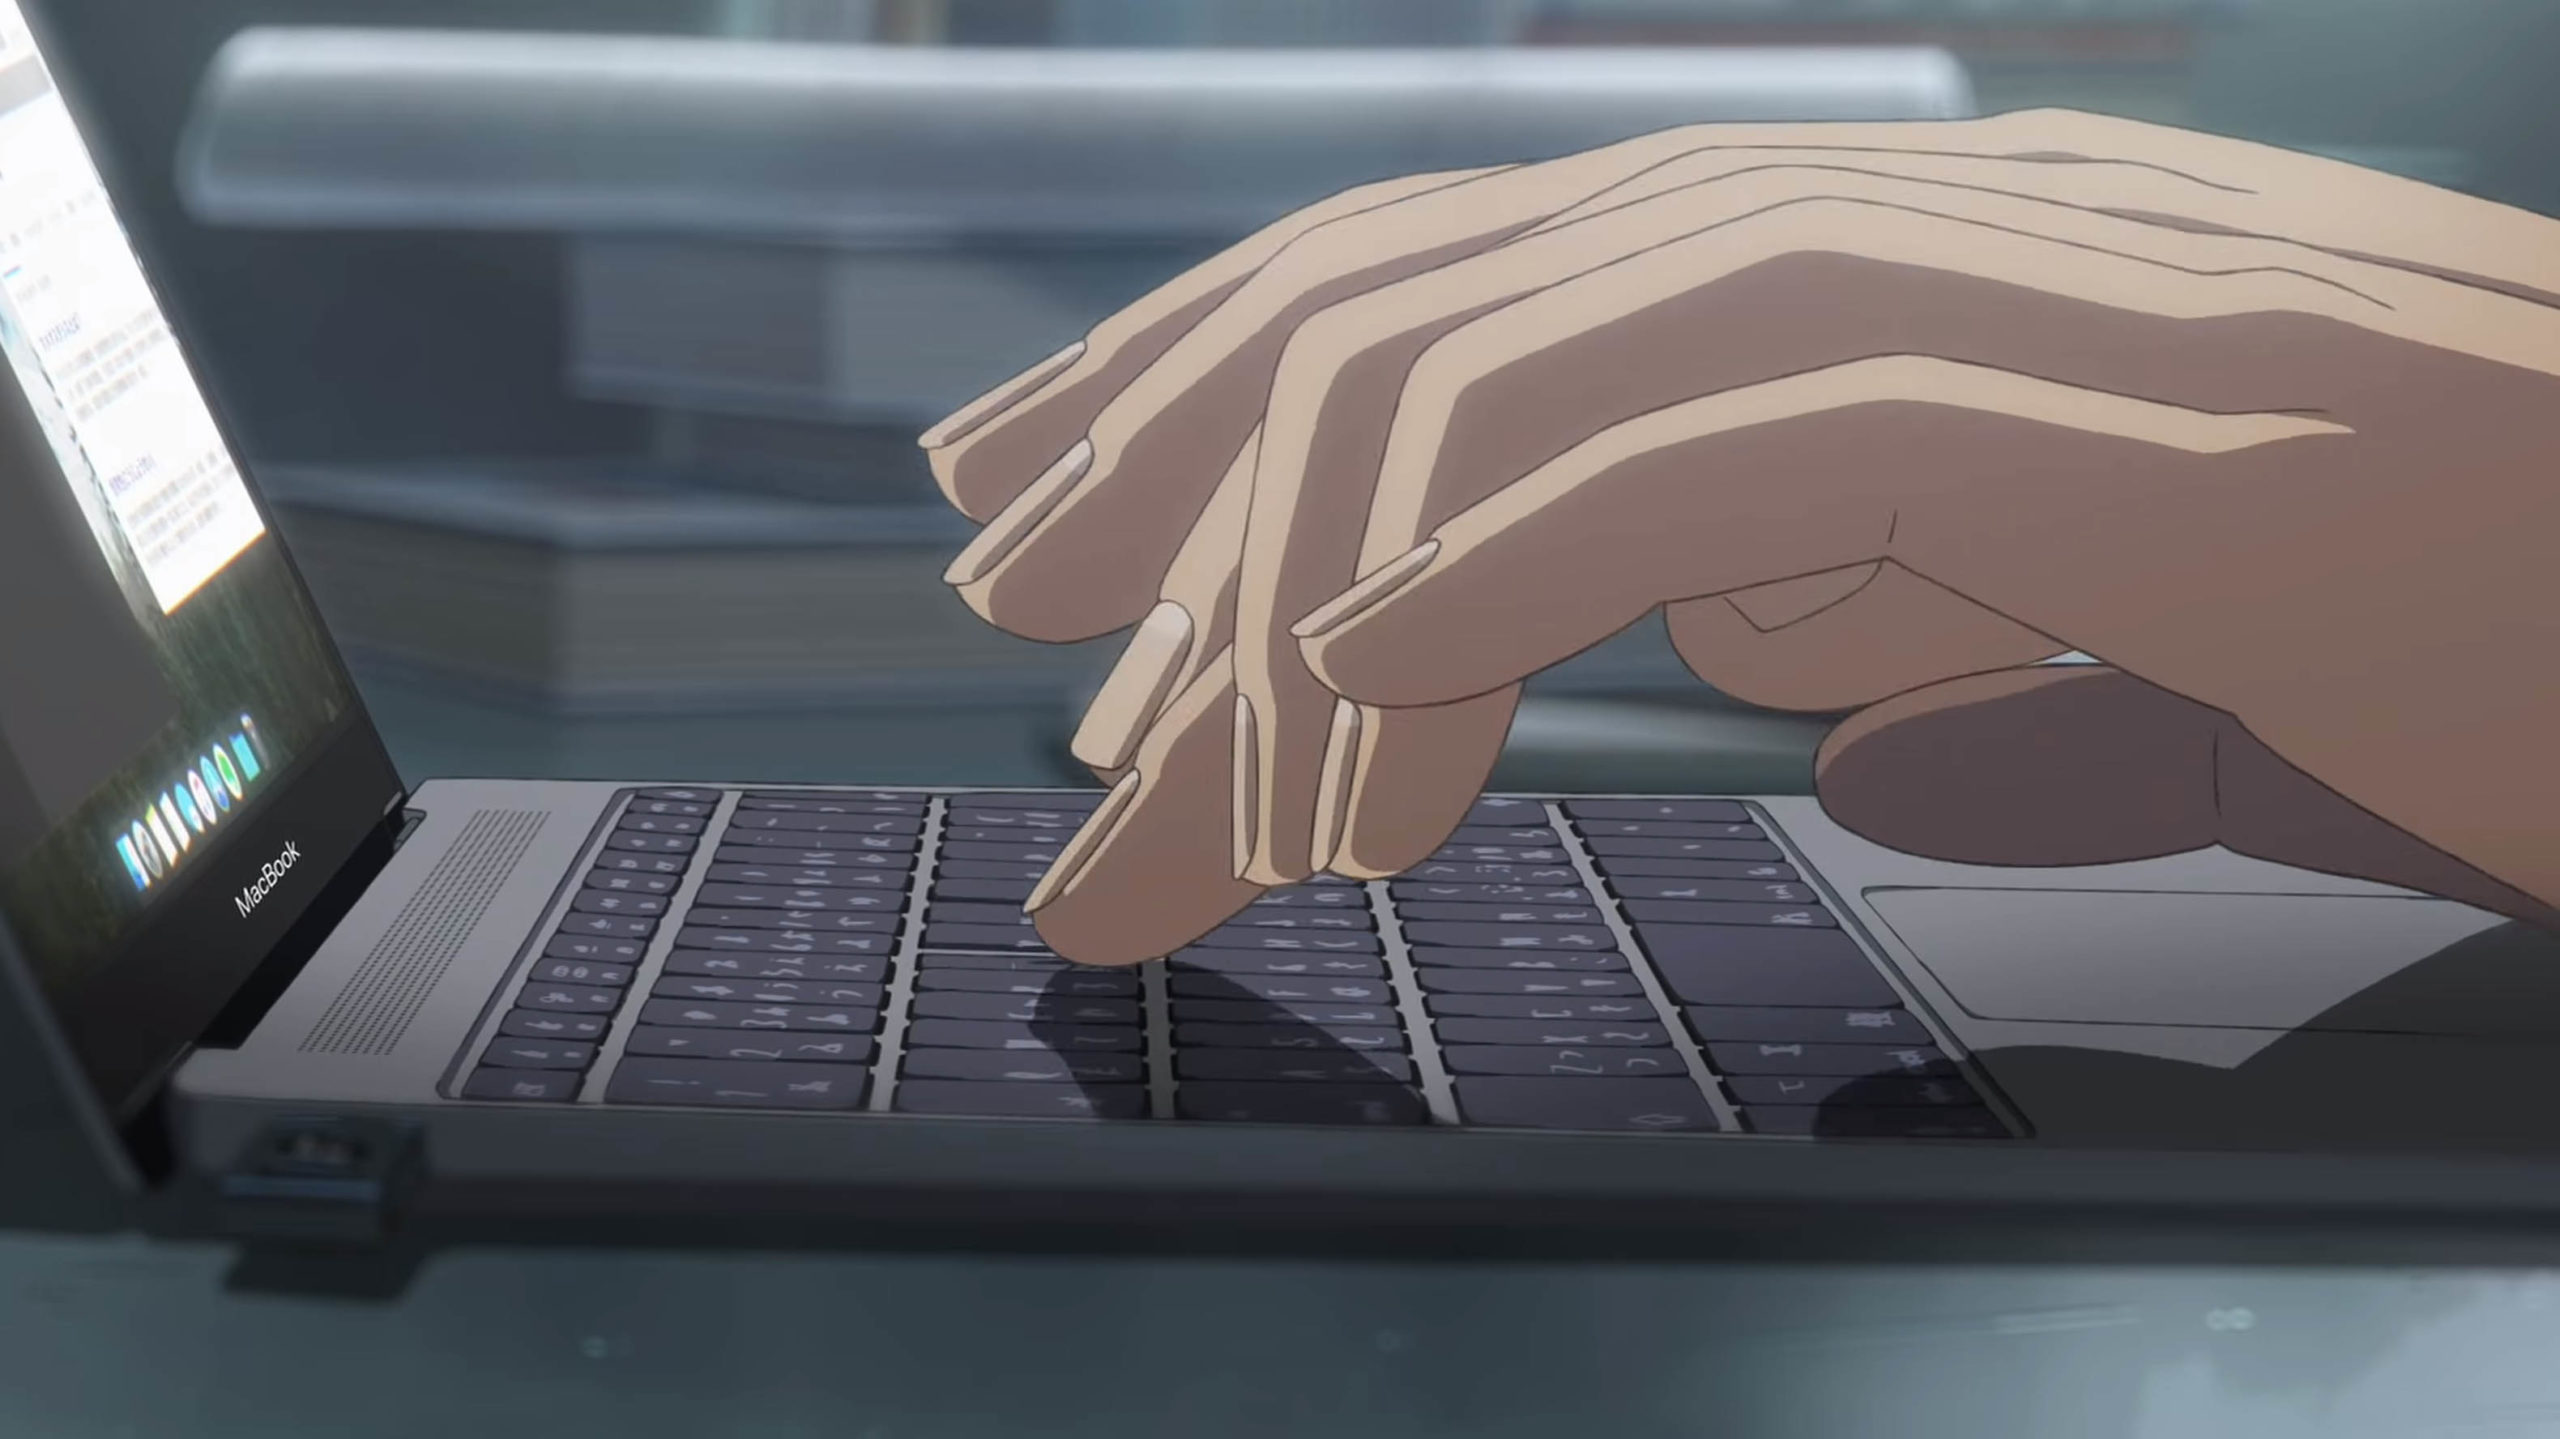 MacBook illustration from anime